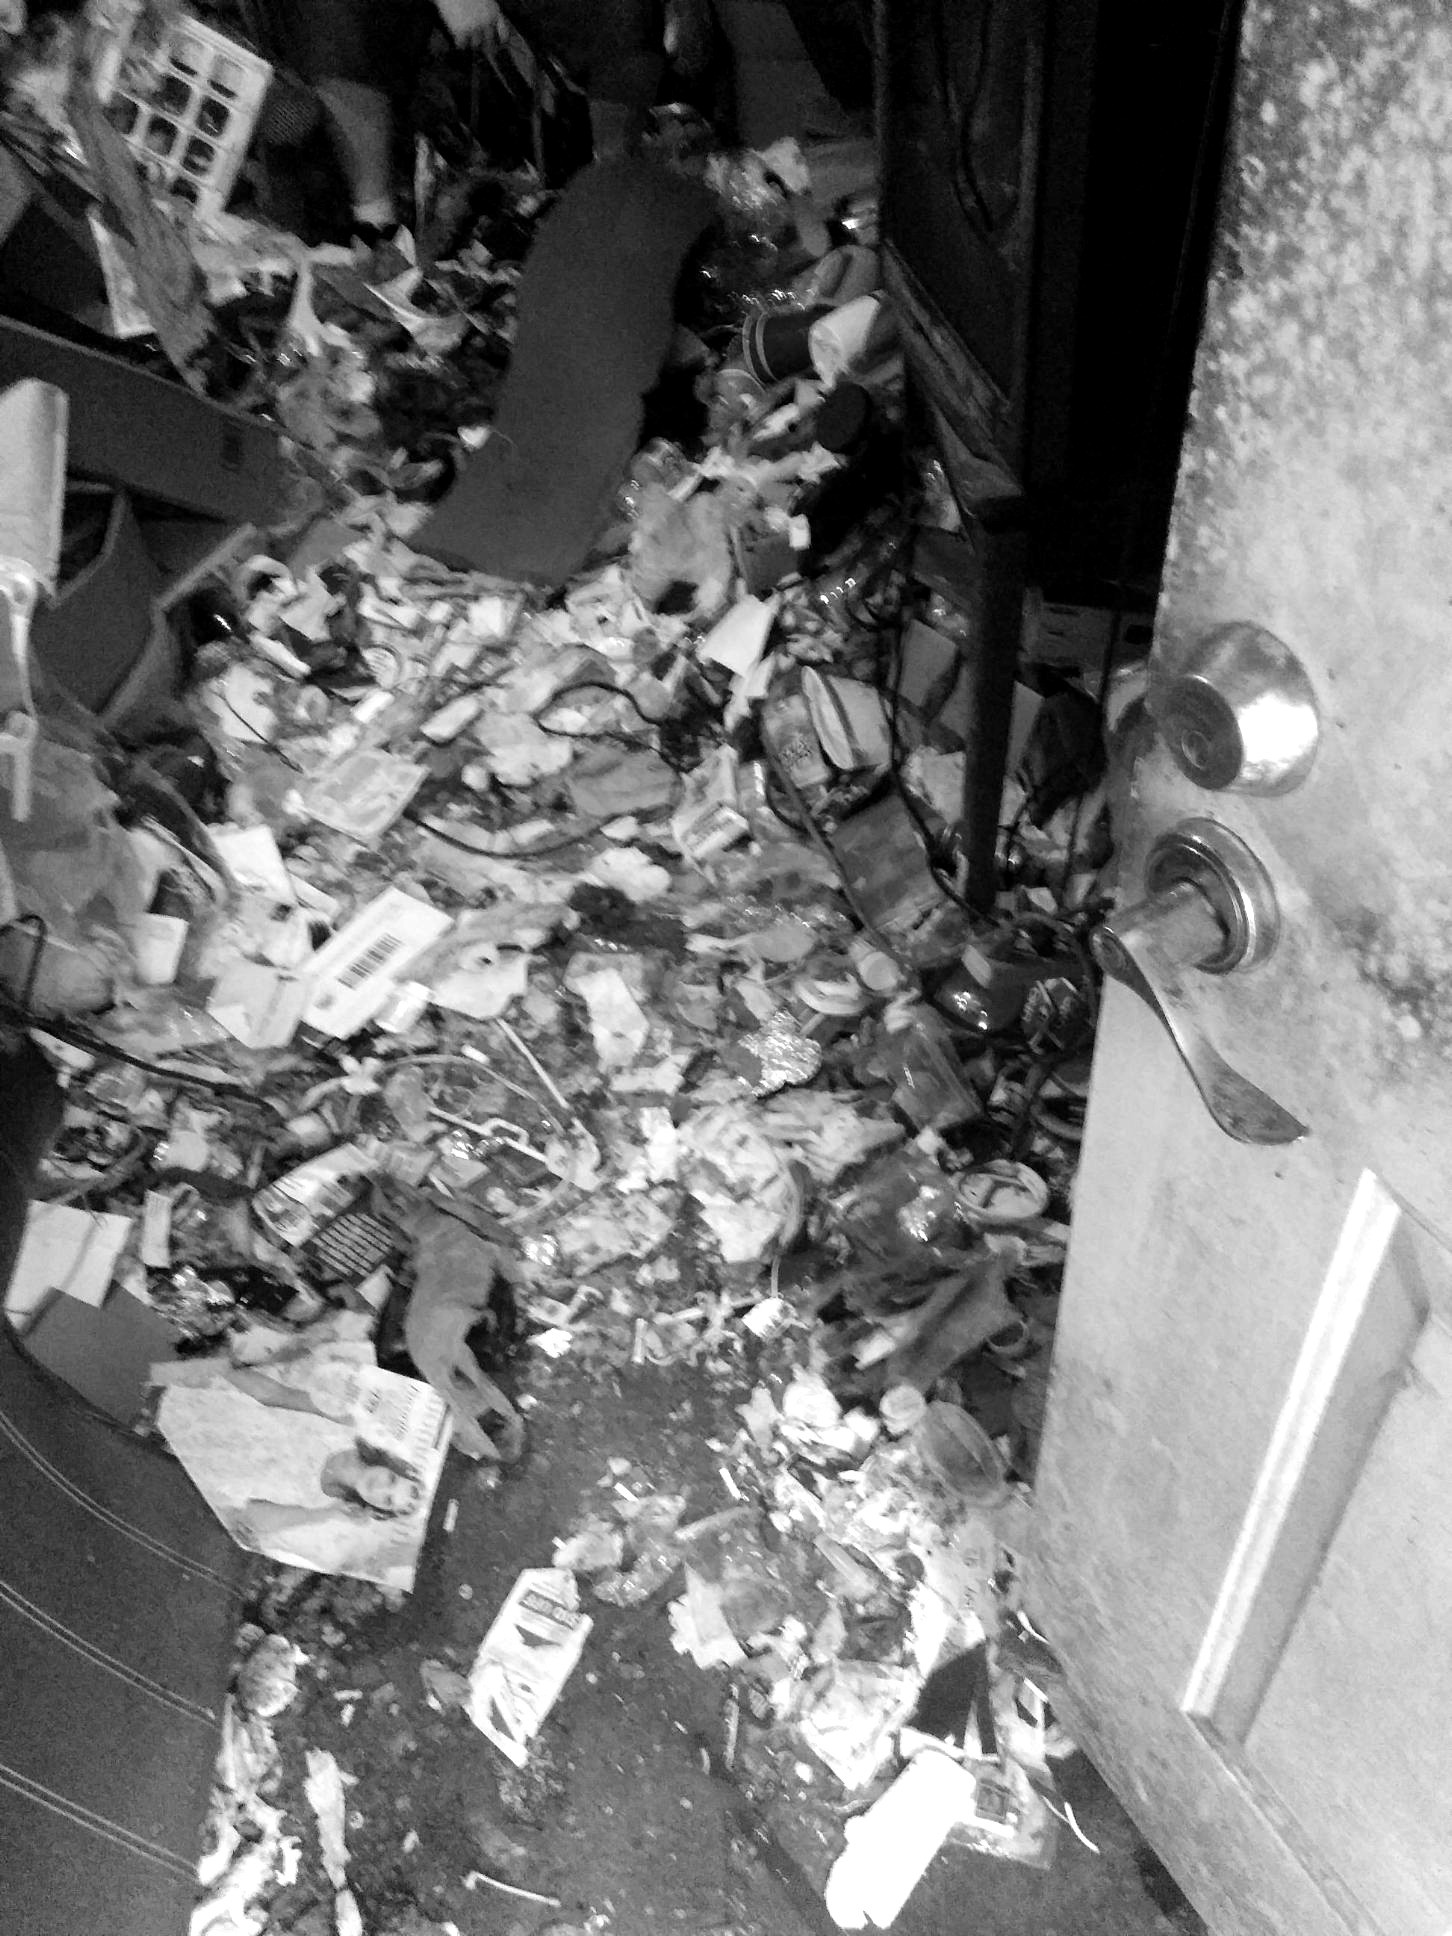 Hoarding Clean Up & Remediation